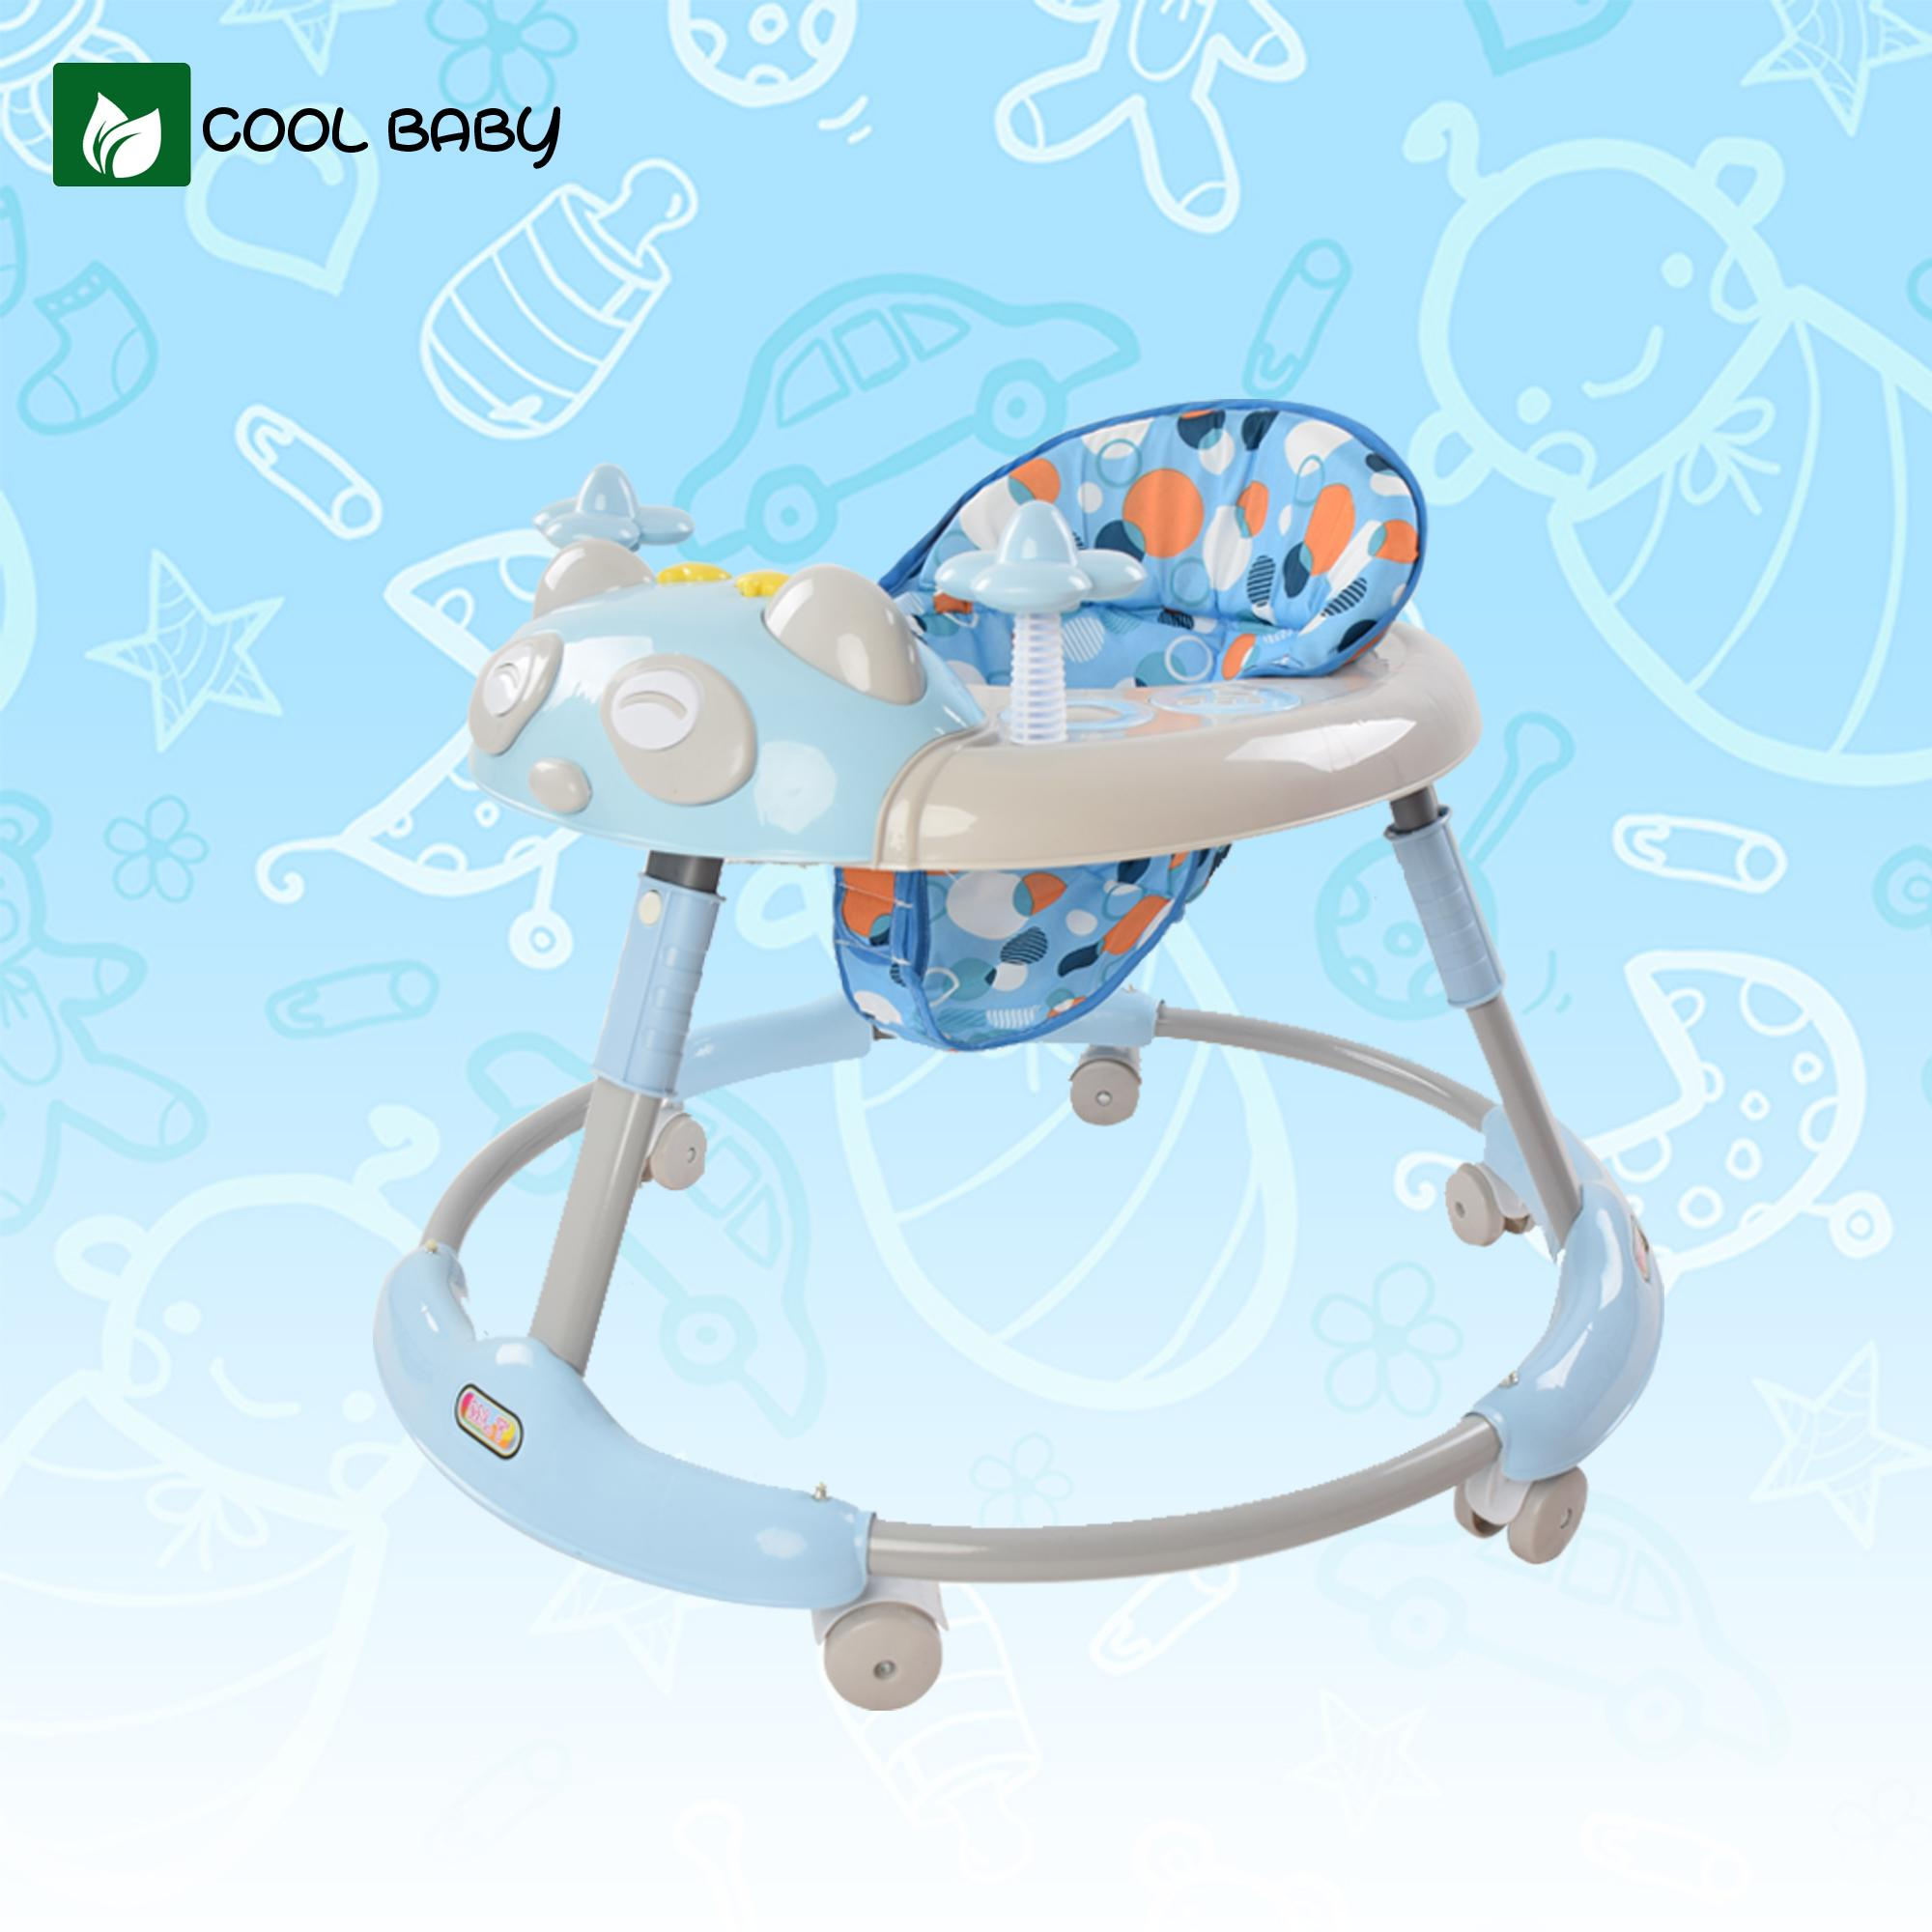 Baby Walker for sale - Walker Stroller online brands, prices & reviews in Philippines | Lazada.com.ph